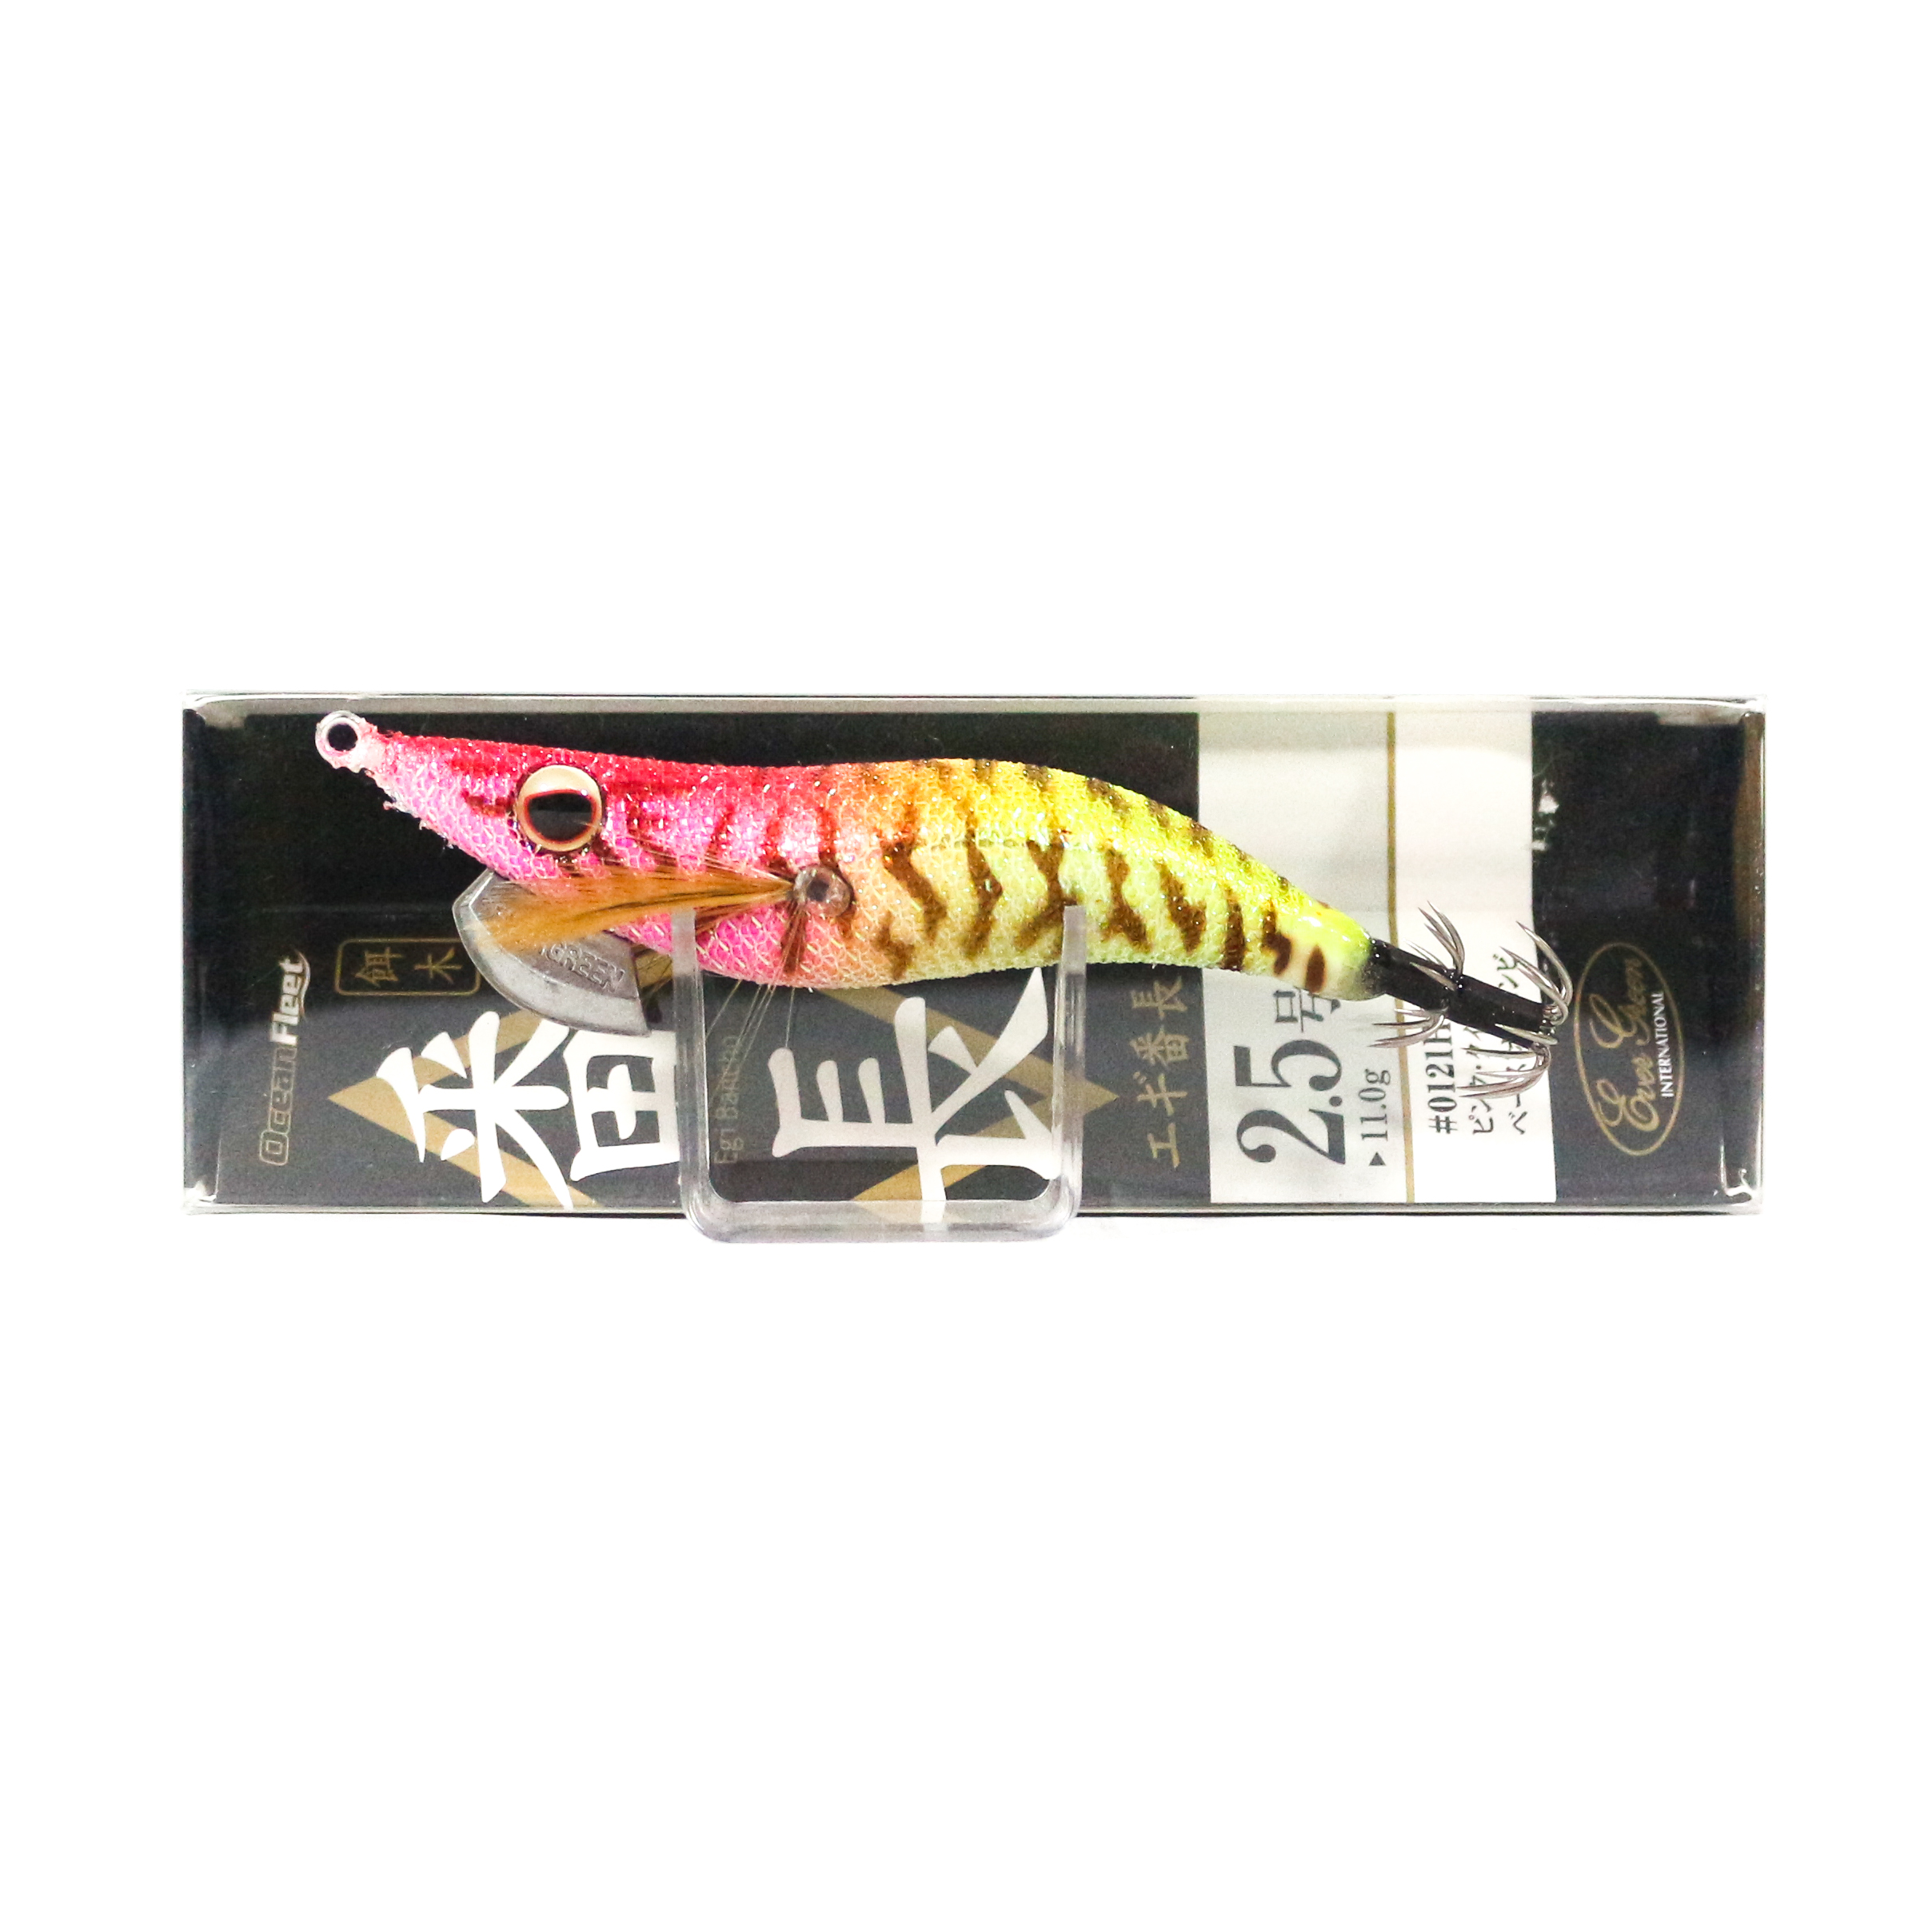 Evergreen Ocean Fleet Custom Squid Jig Lure 2.5 0121HC (2606)